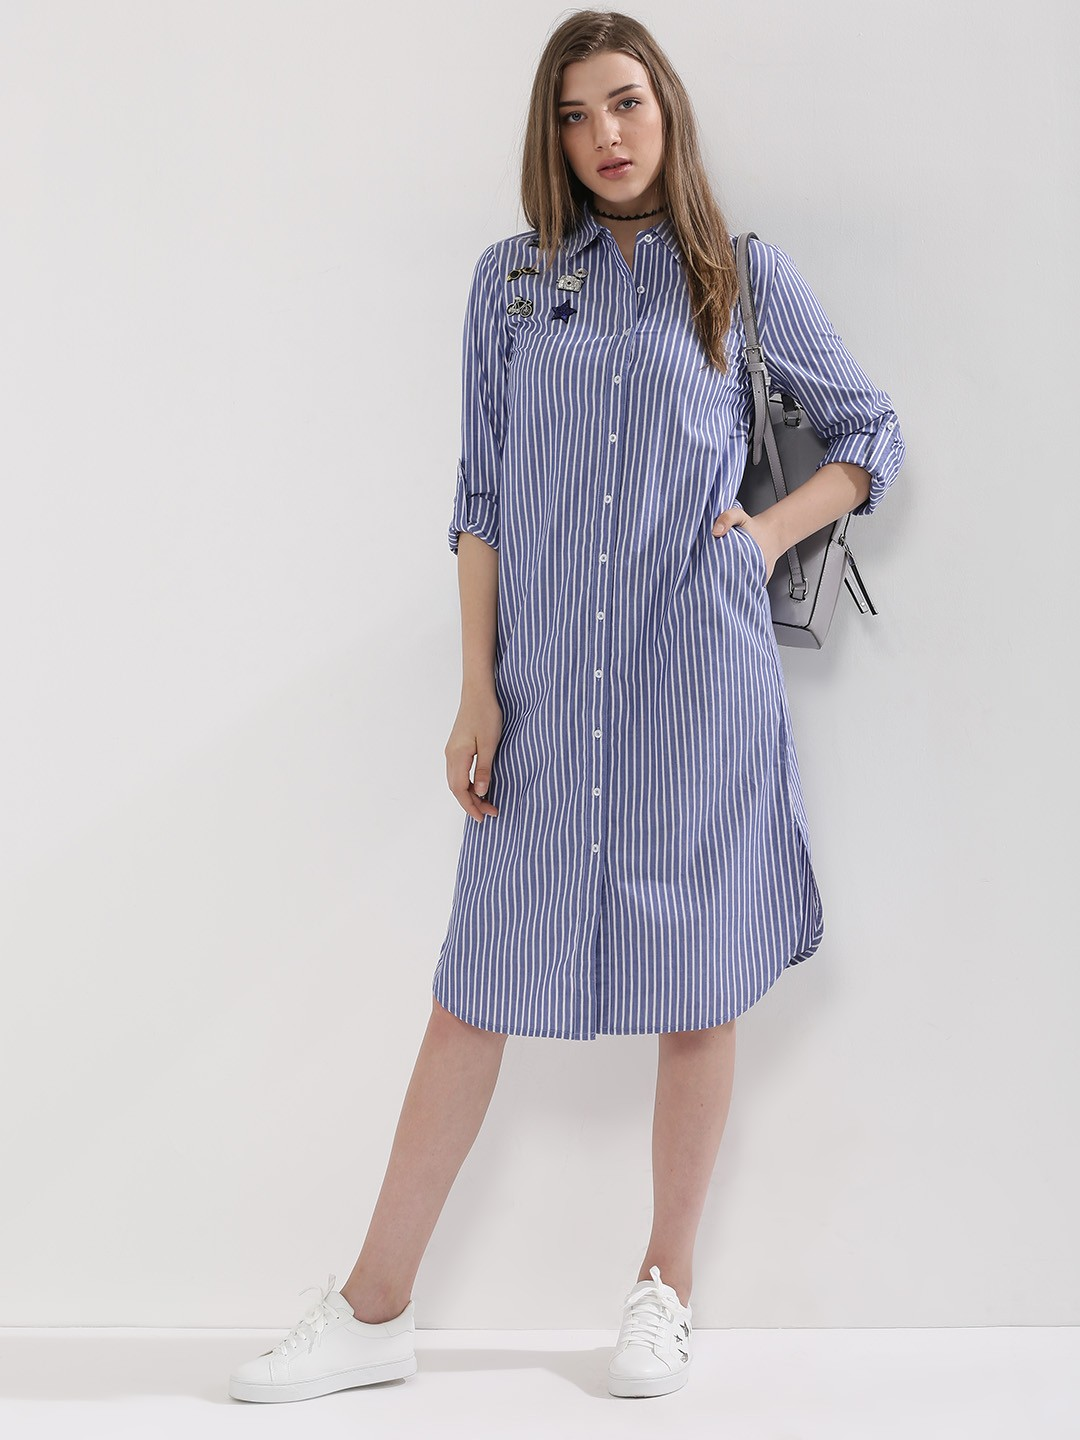 Buy multiple patch shirt dress for women women 39 s blue for Where to buy a dress shirt